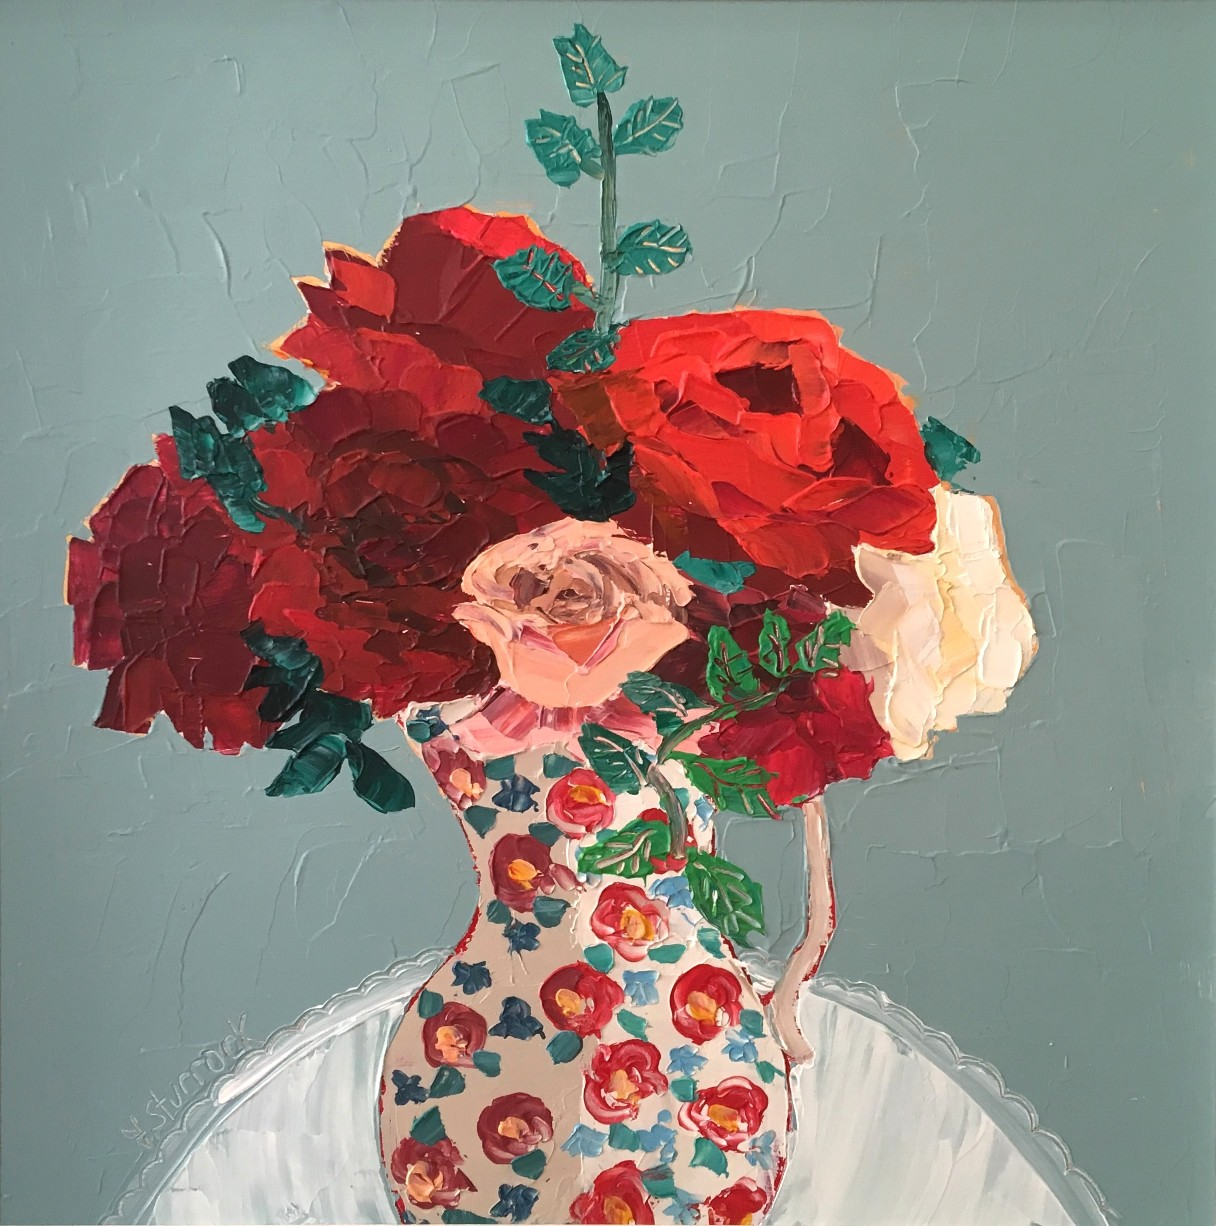 'Roses and Peonies' by artist Fiona Sturrock